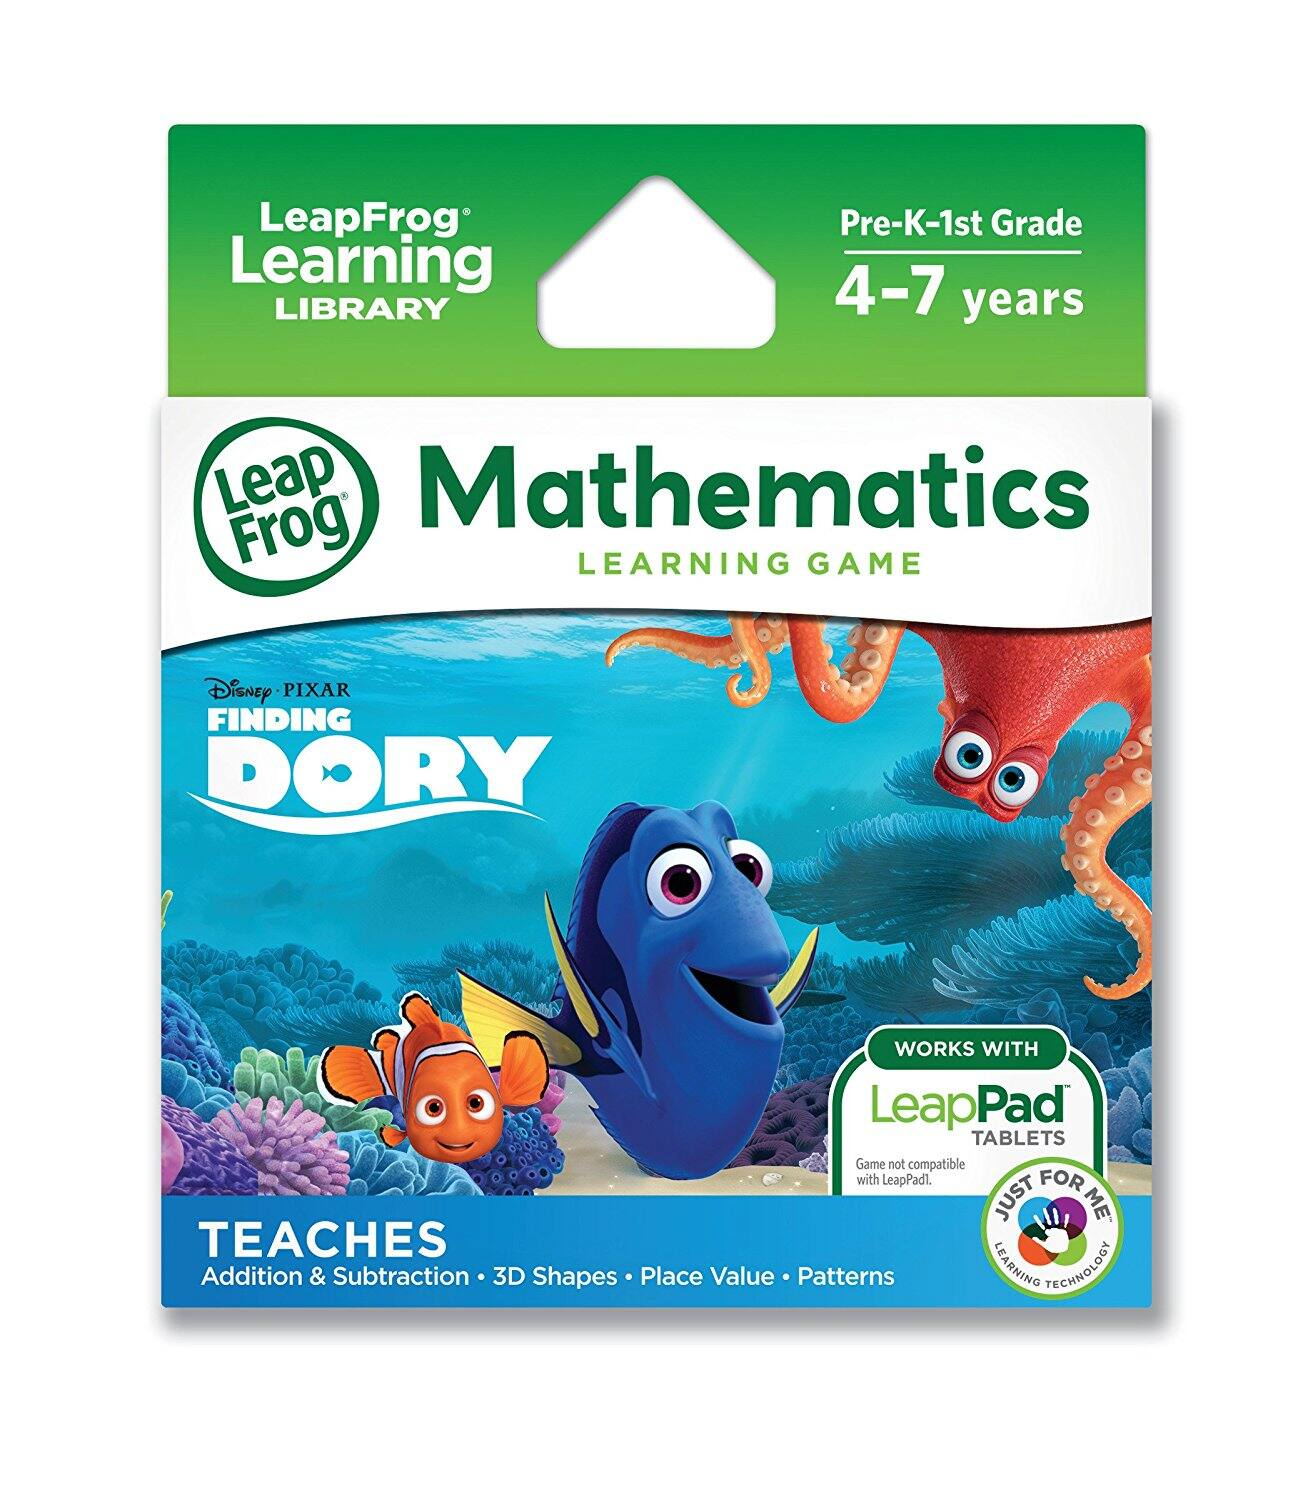 LeapFrog Disney/Pixar Finding Dory Learning Game (for LeapPad Platinum, LeapPad Ultra, LeapPad2, LeapPad3) at its Best Price $4.99 (56% off) @amazon